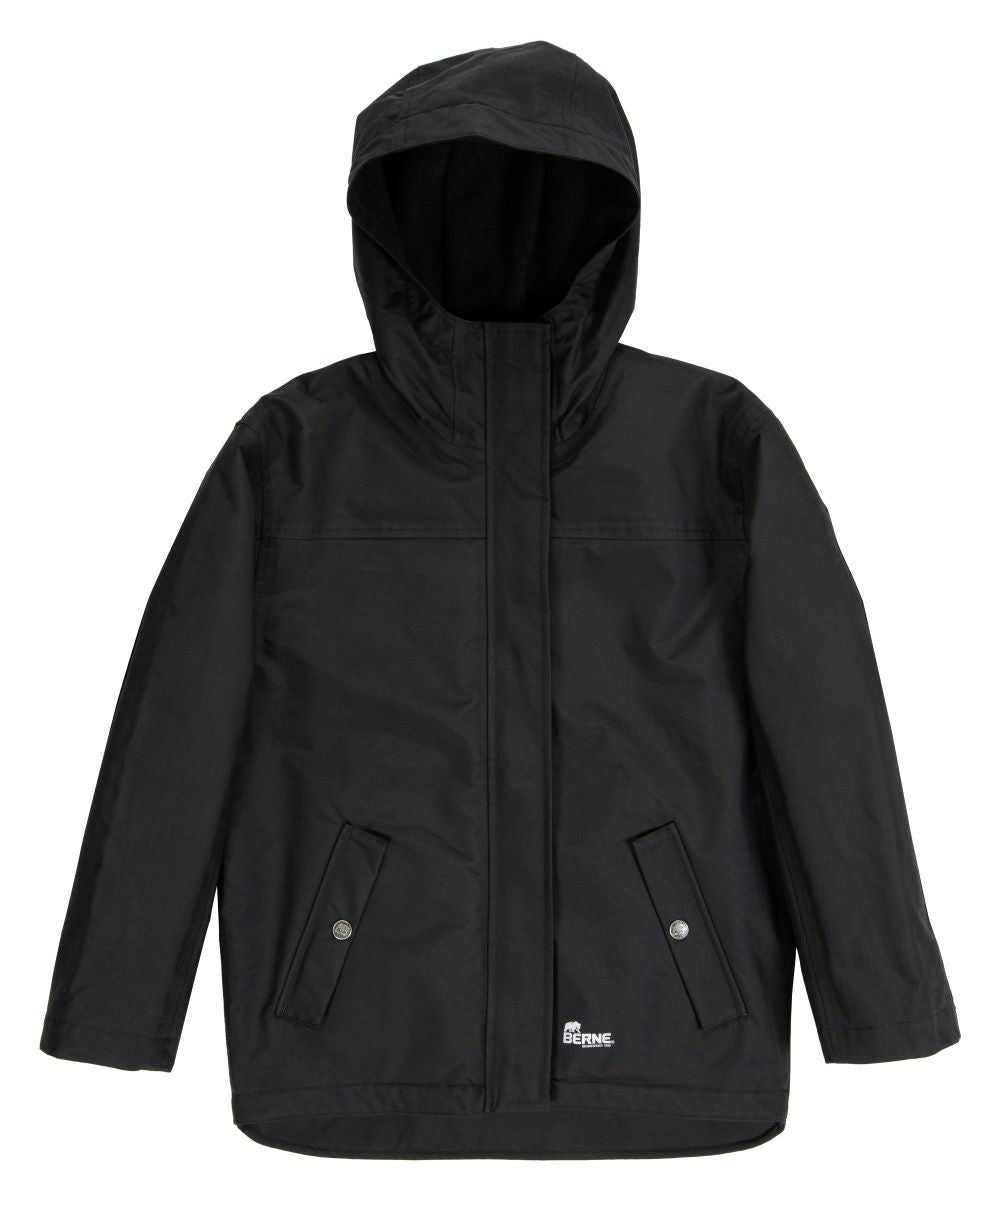 'Berne' Youth Splash Insulated WP Jacket - Black